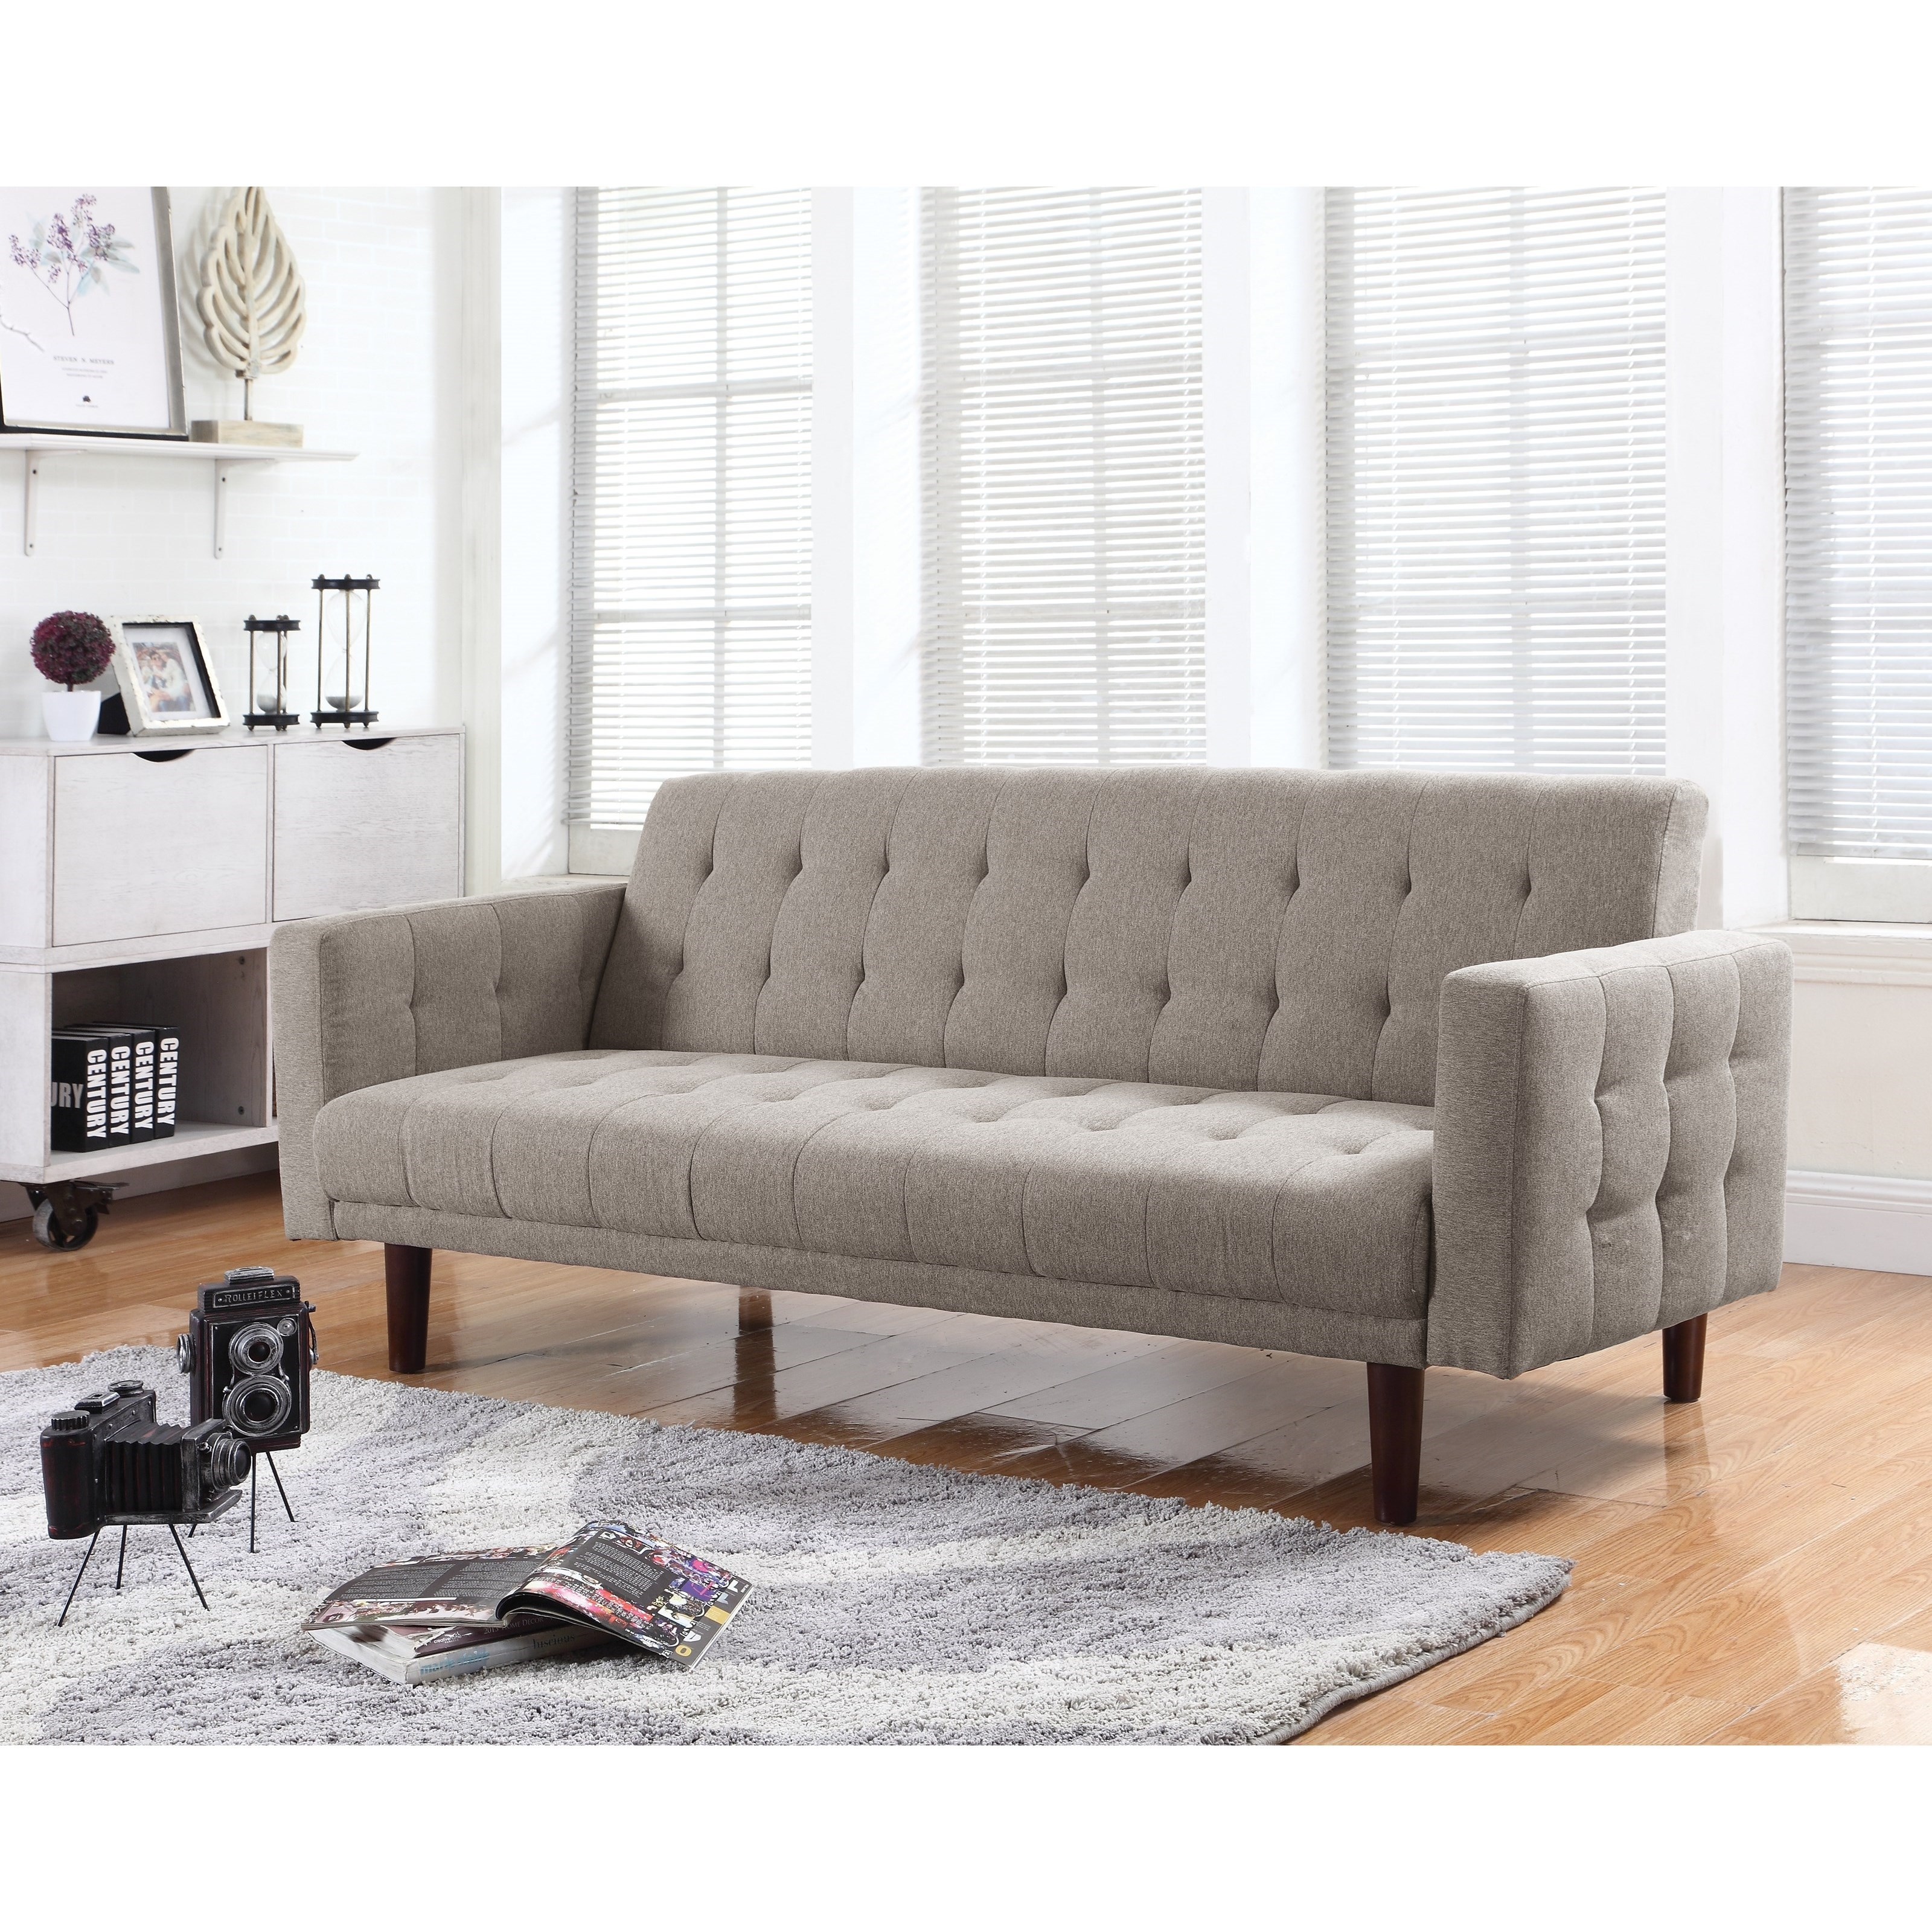 coaster futons sofa bed   item number  503976 coaster futons 503976 button tufted sofa bed with chenille      rh   dunkandbright